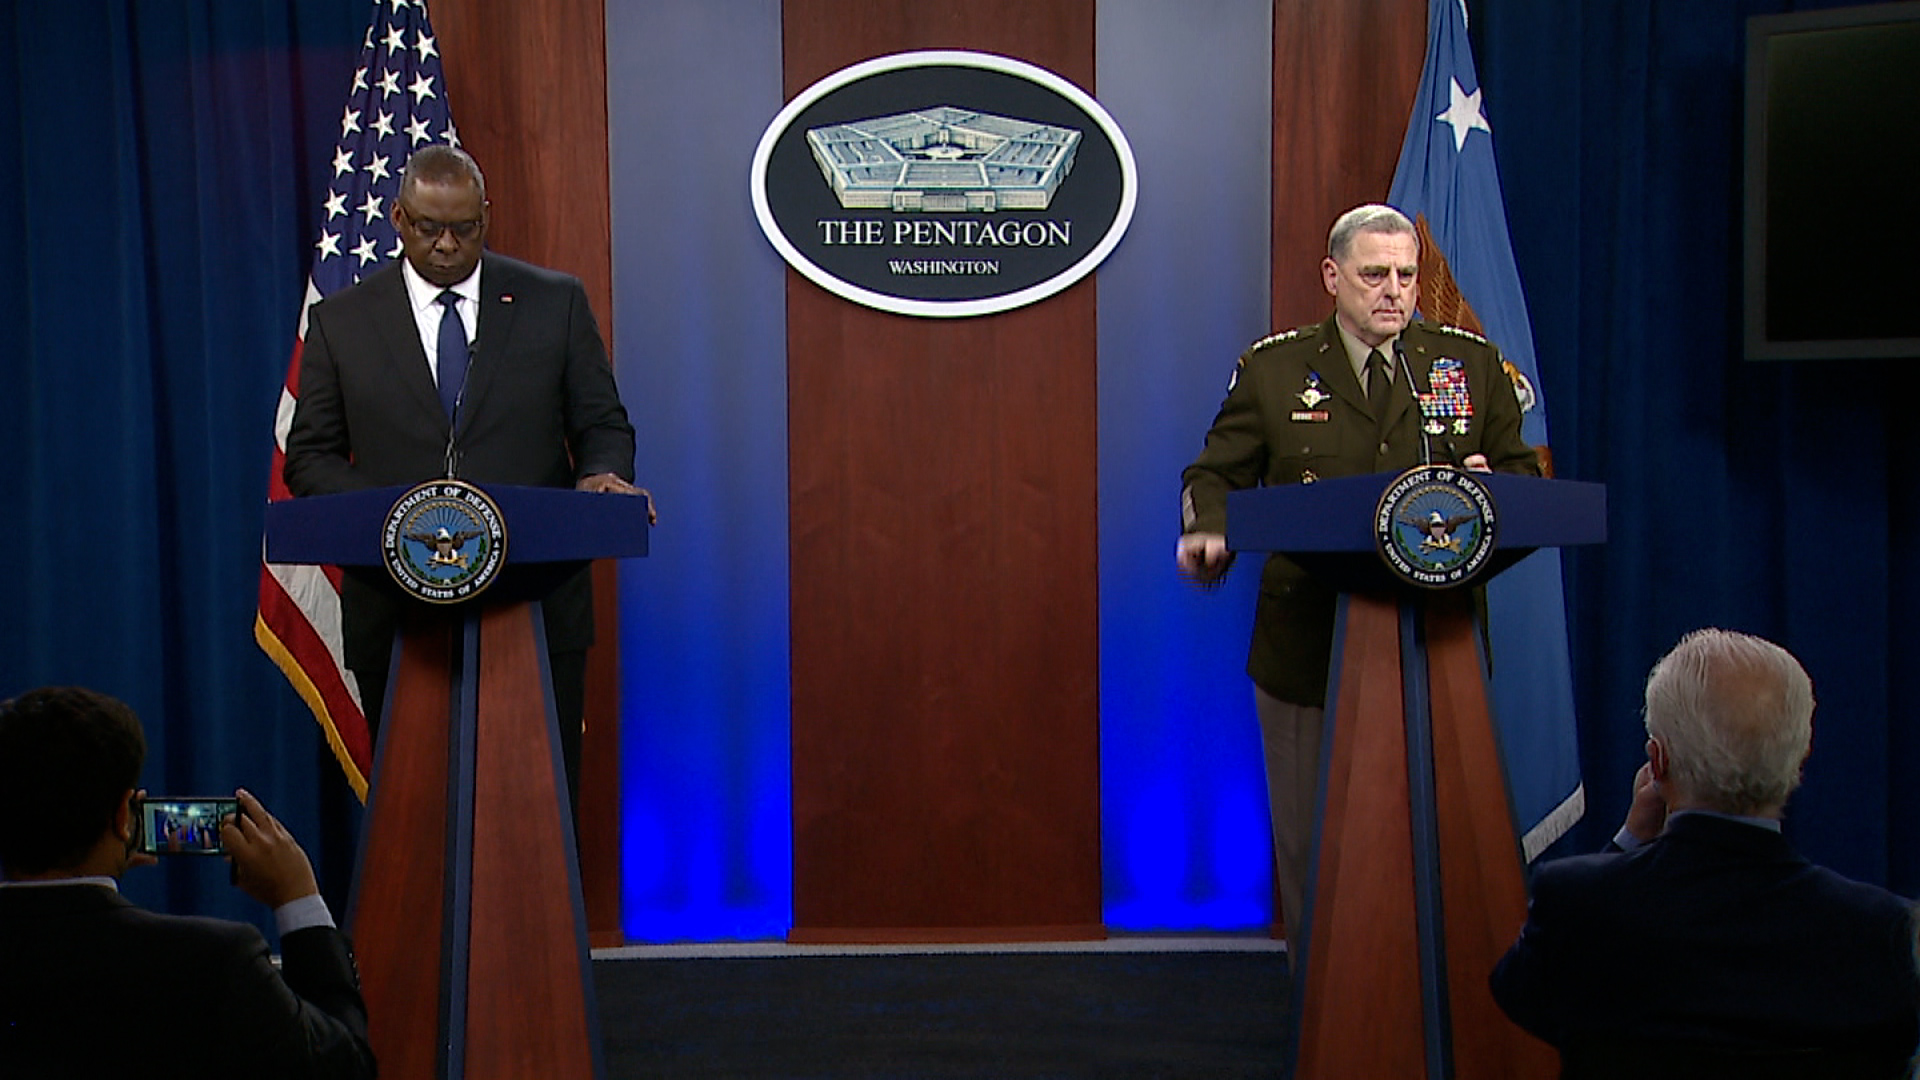 Secretary of Defense LloydAustin, left,and Chairman of the Joint Chiefs of Staff Gen. Mark Milley speak during a press briefing at the Pentagon in Washington, DC, on August 18.